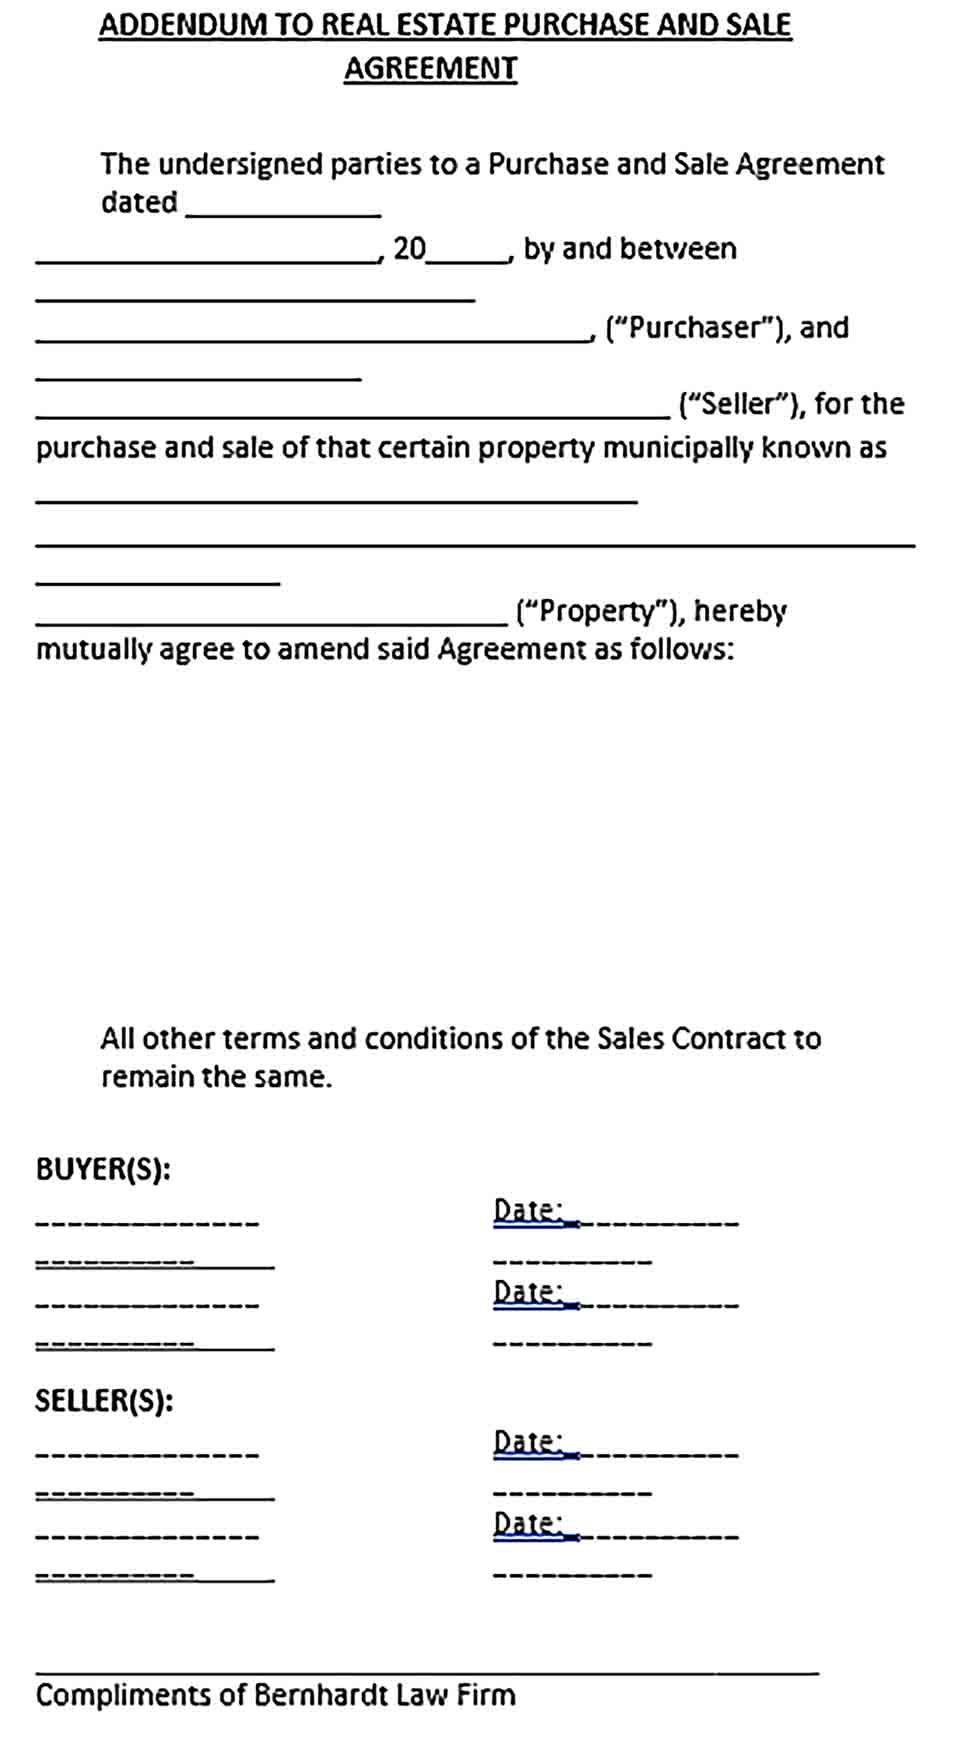 Sample Sales Addendum Agreement